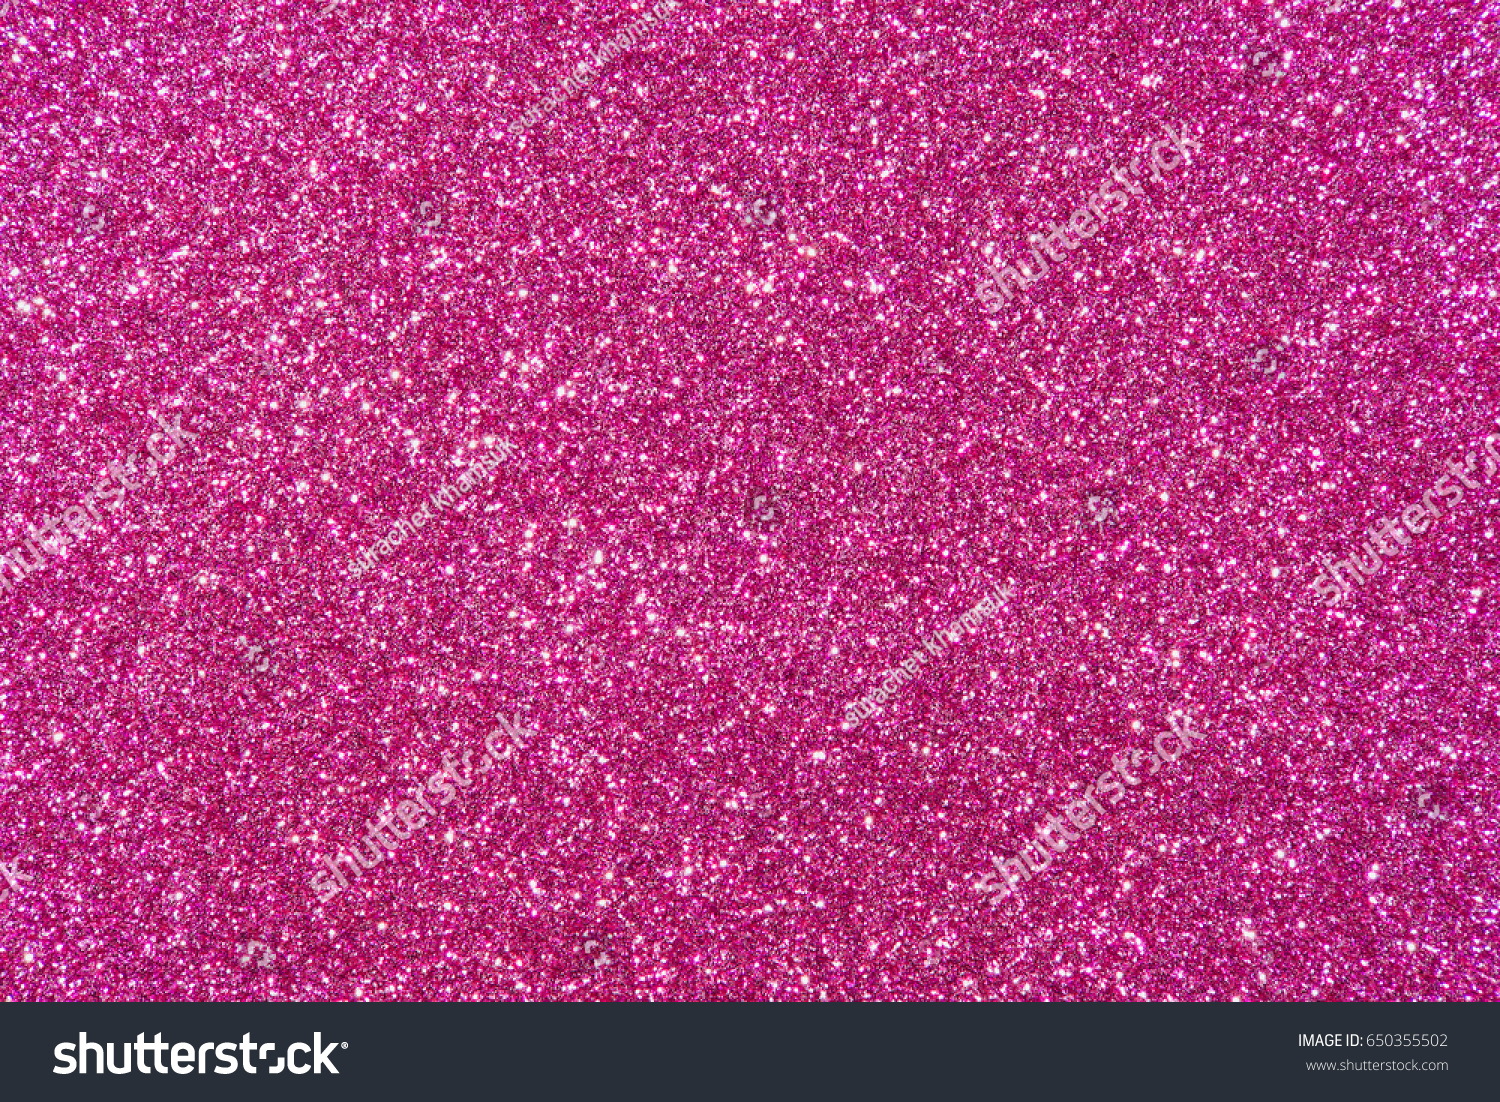 pink glitter texture christmas abstract background #650355502